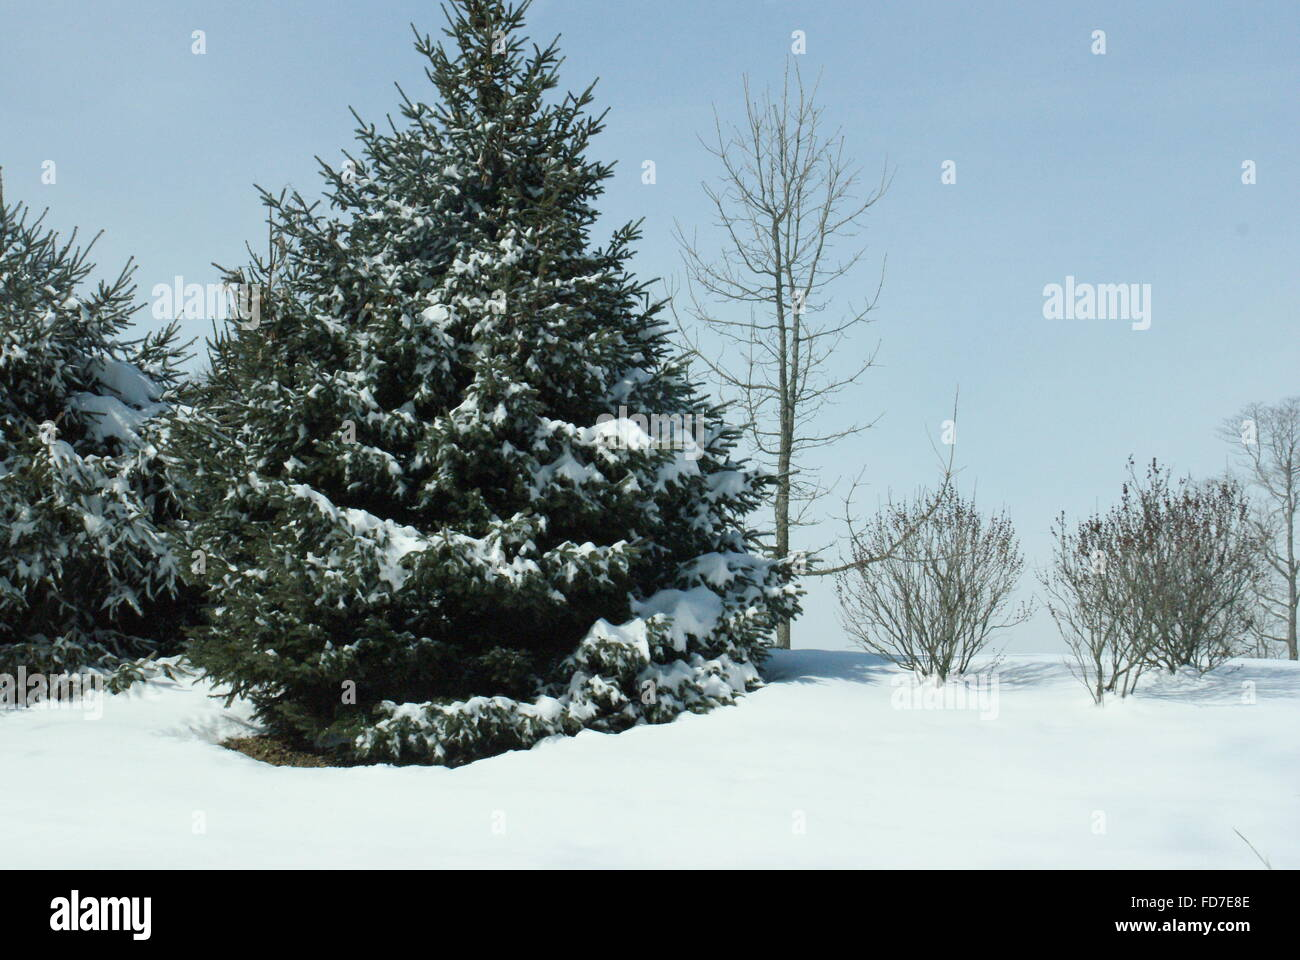 Evergreen trees with snow on them. - Stock Image